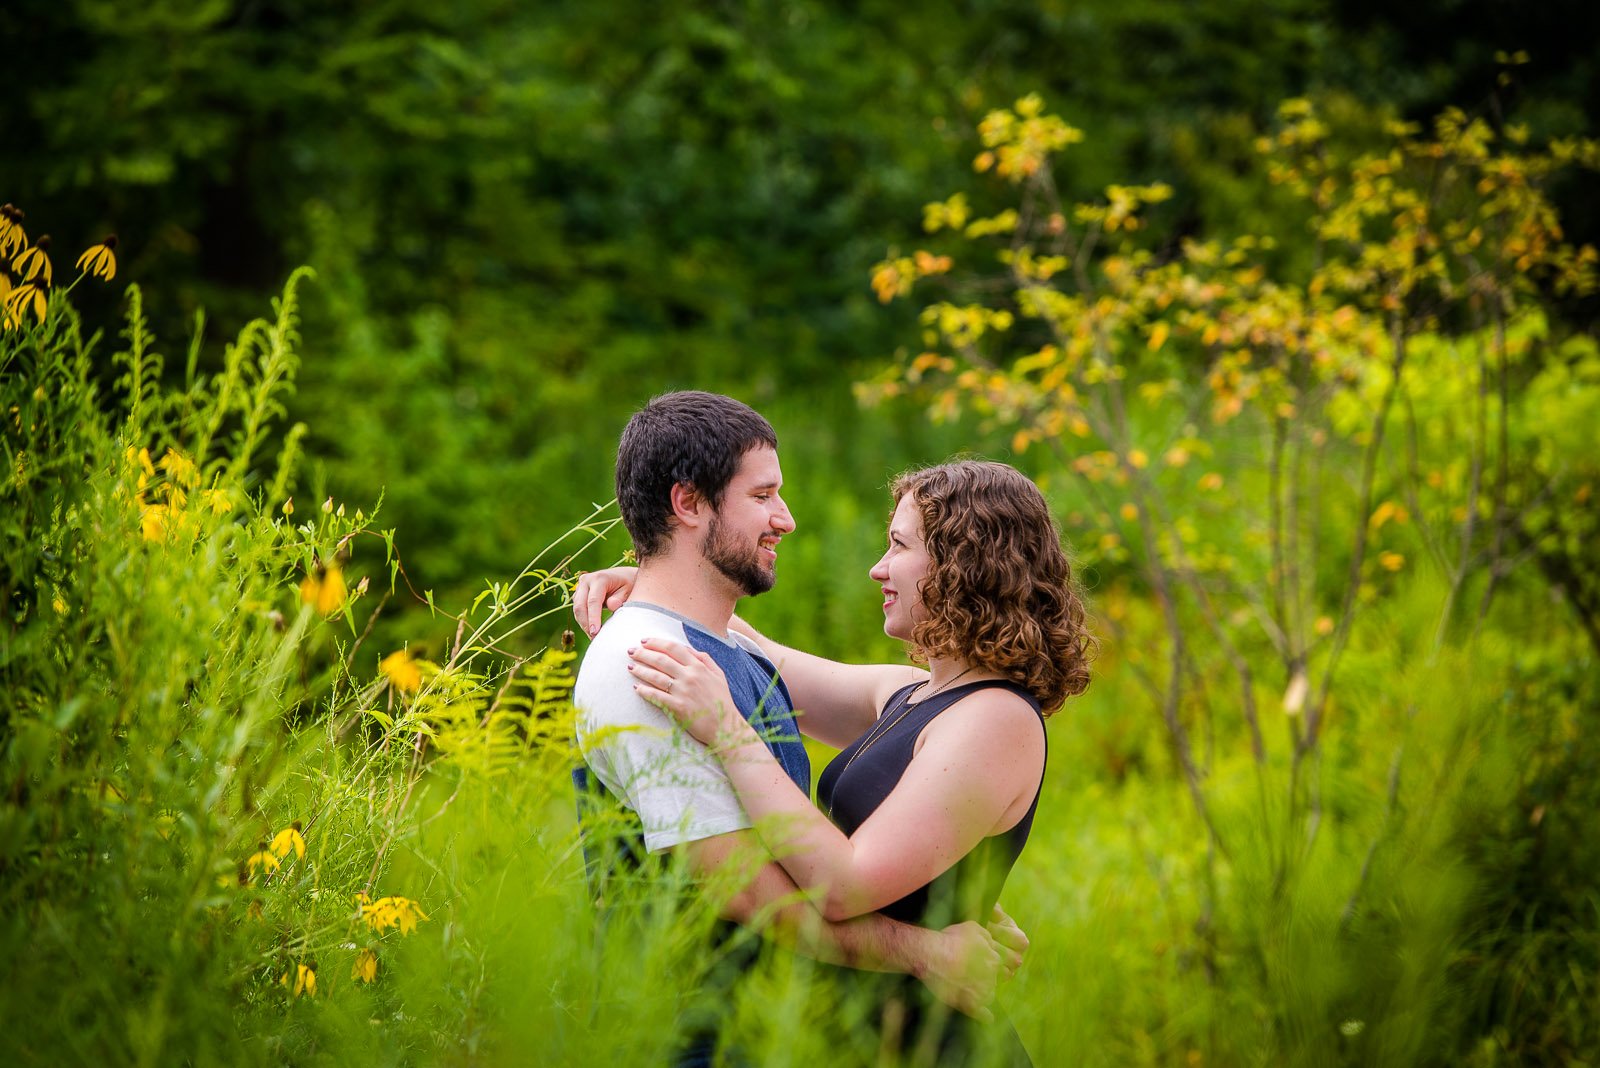 Eric_and_Christy_Photography_Blog_Engagement_Andrea_Clint-7